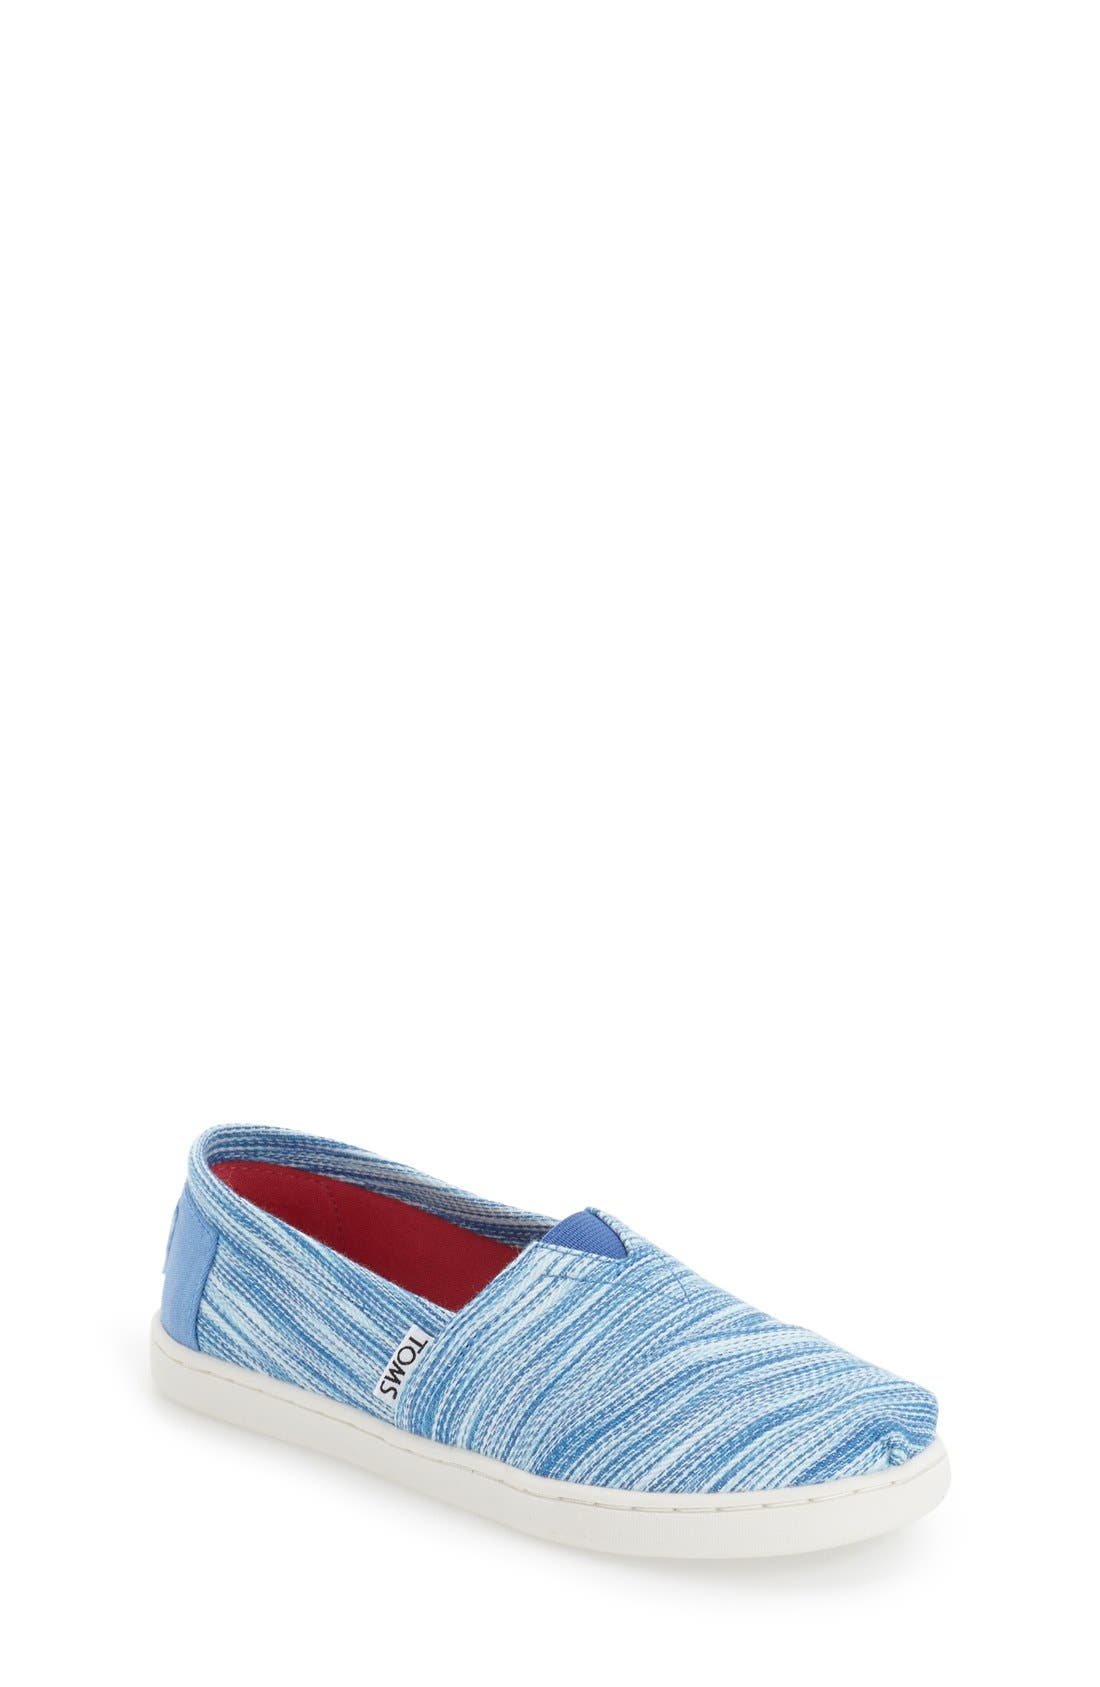 'Classic - Blue Space Dye' Slip-On,                         Main,                         color,